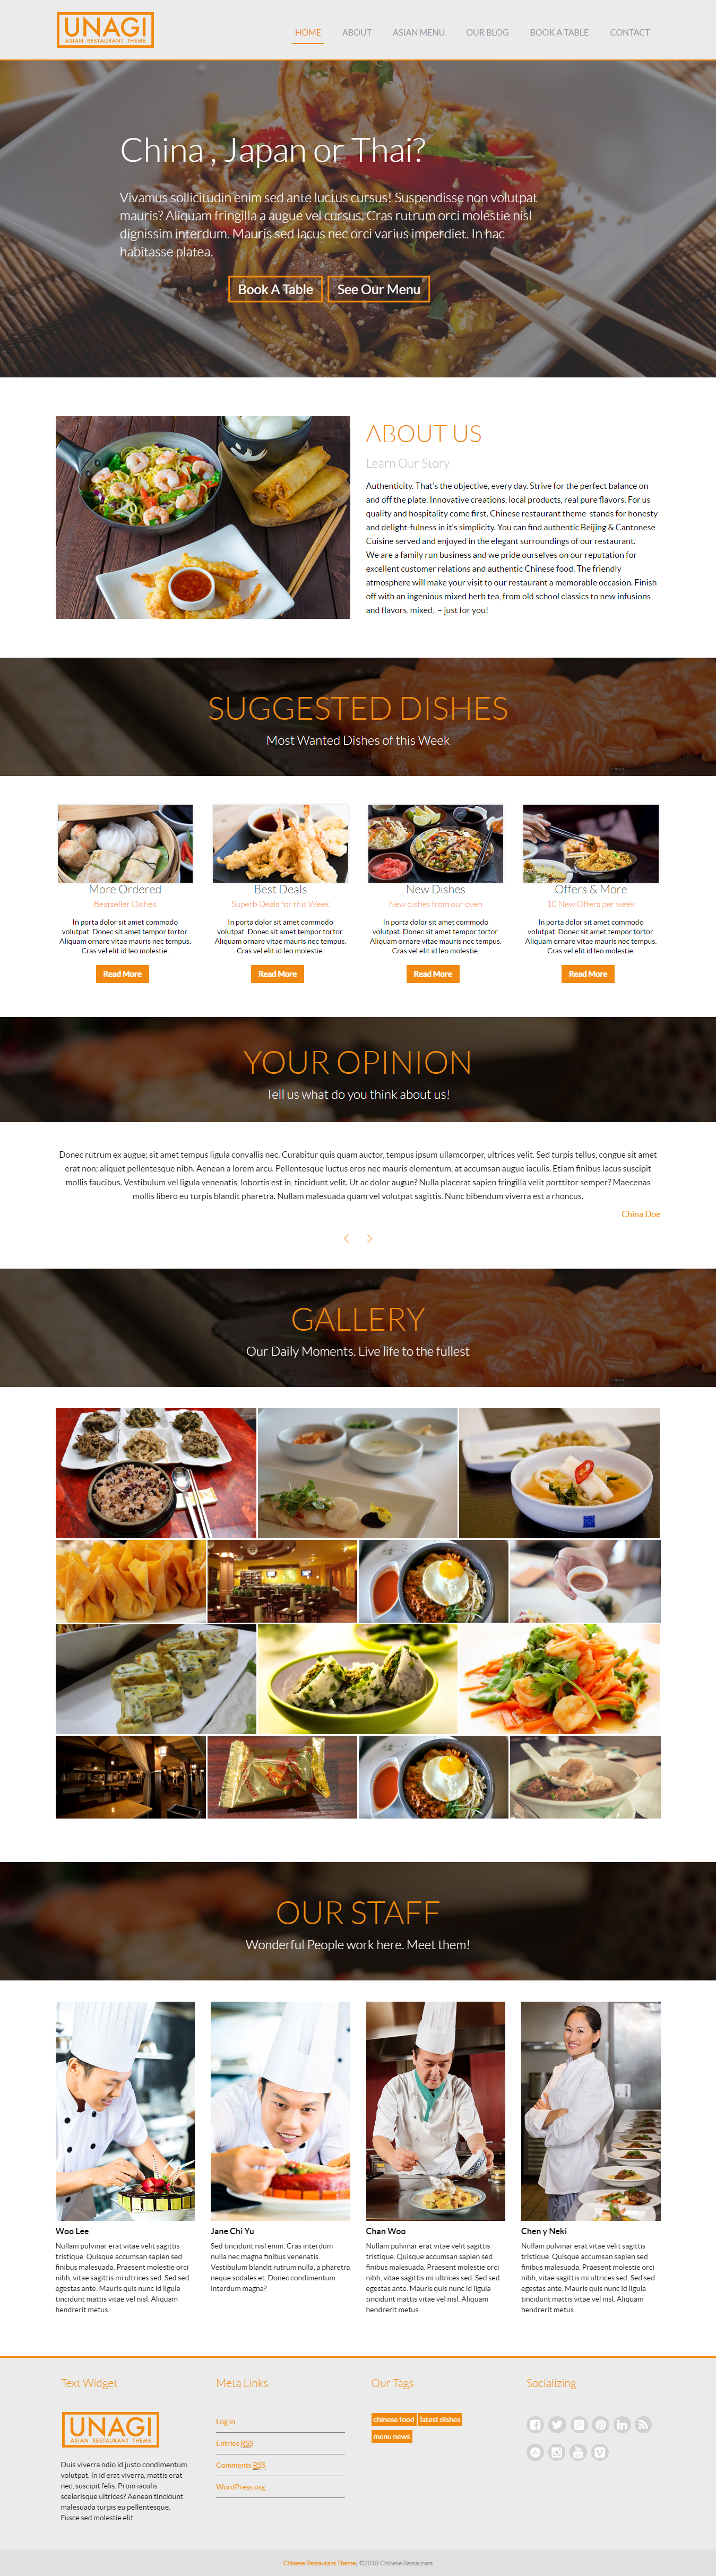 chinese restaurant lite best free bar pub wordpress theme - 10+ Best Free Bar and Pub WordPress Themes